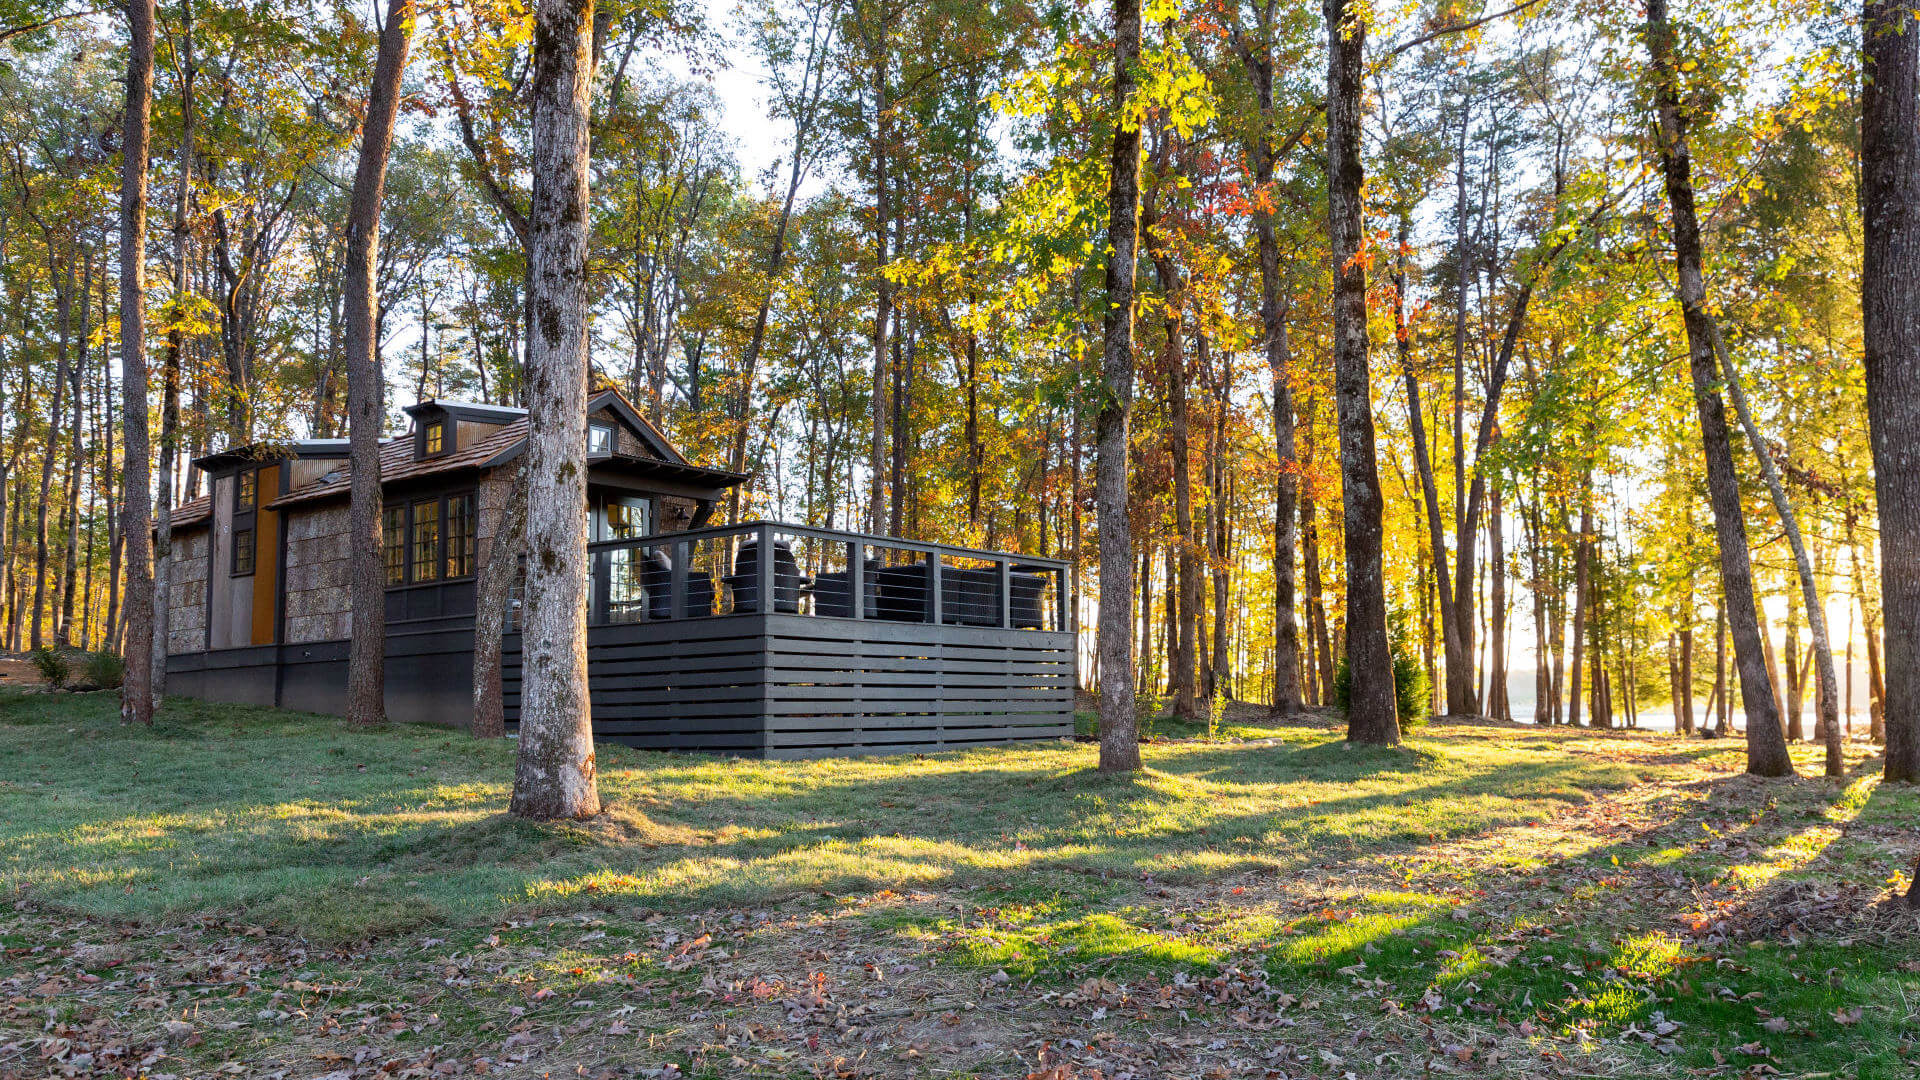 The Low Country Designer Cottages tiny home at The Retreat at Water's Edge